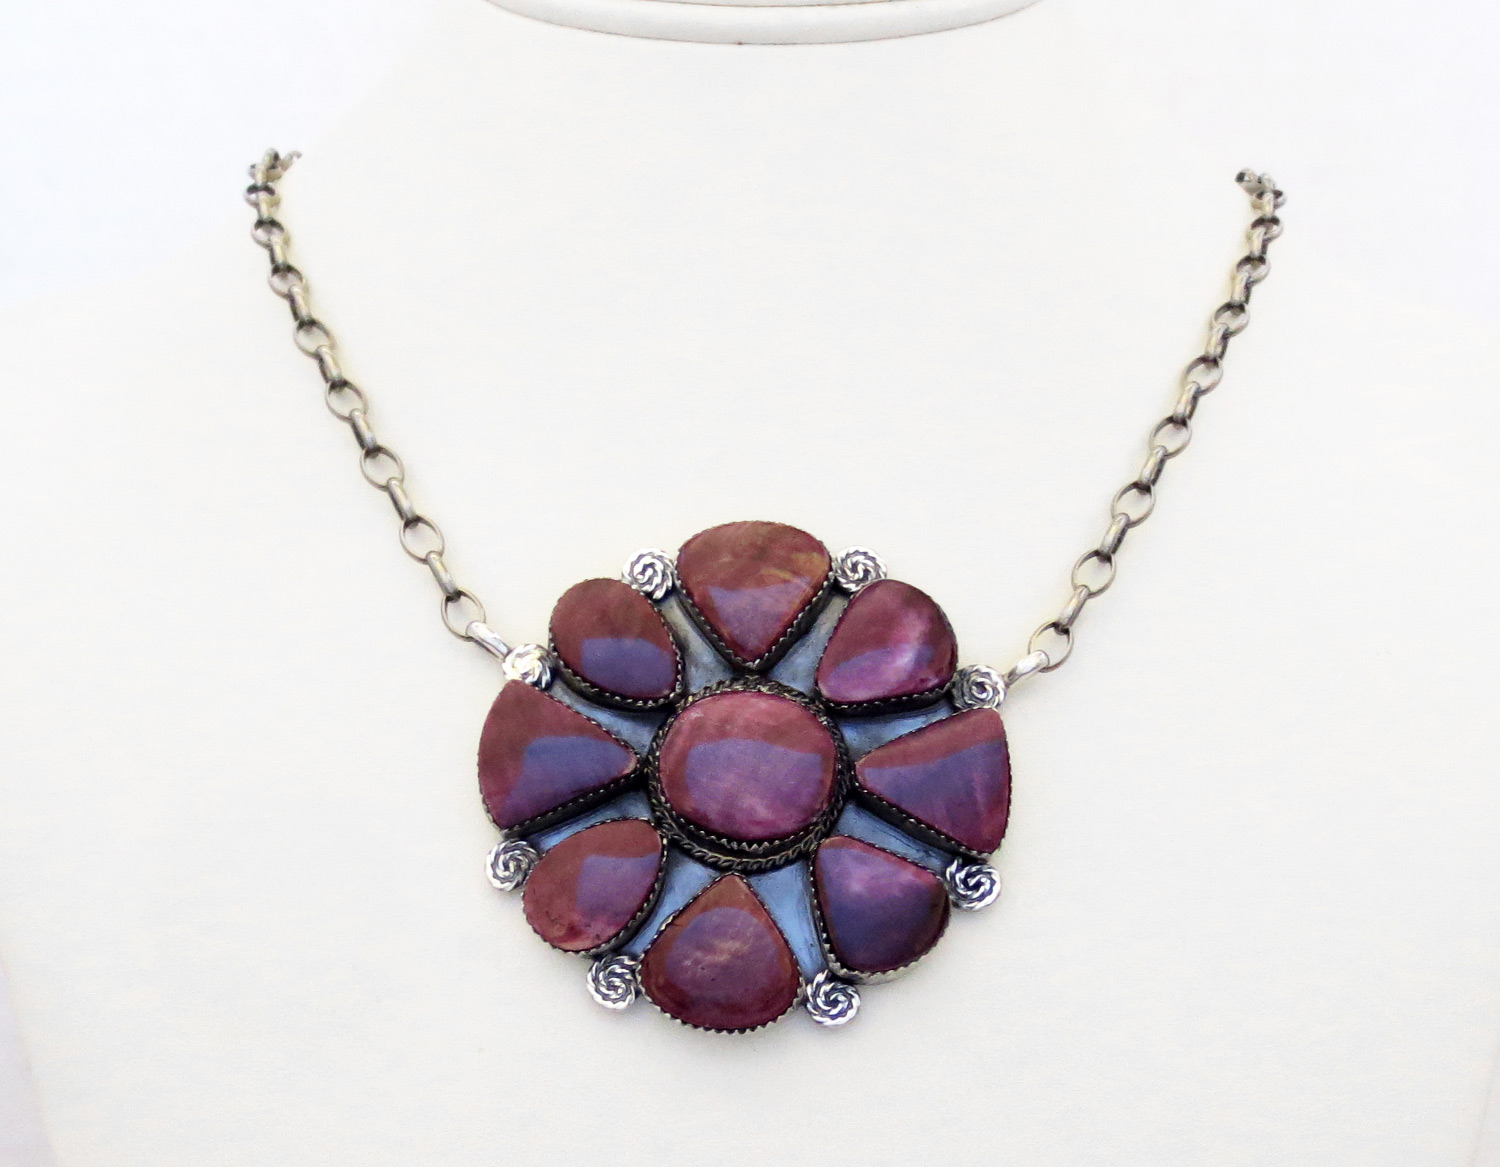 Big Purple Spiny Oyster & Sterling Silver Pendant Necklace - 3861dt